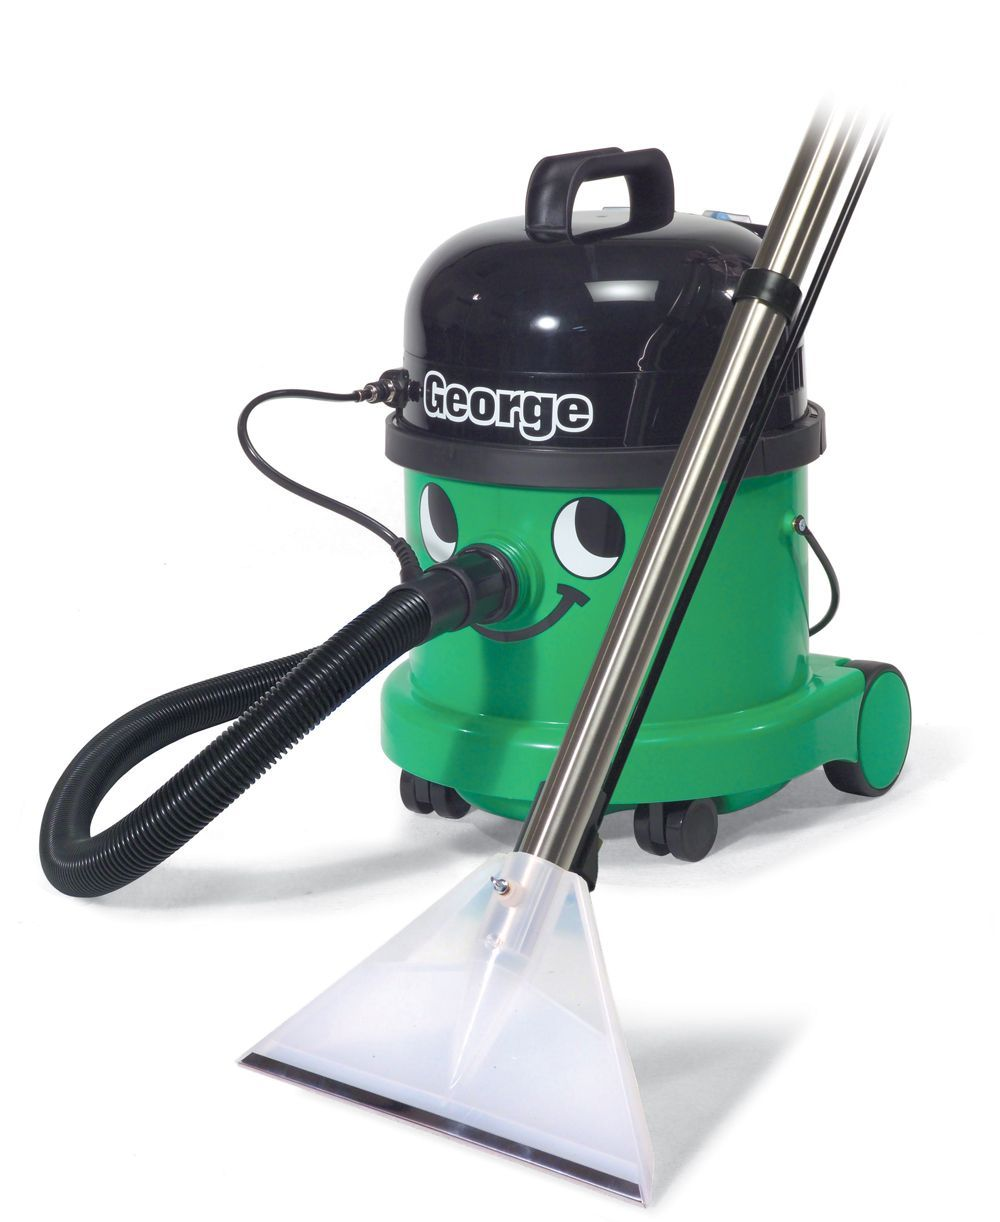 Jolly Numatic George Wet Dry Online Now At Central Vacuum More About Our Numatic Prices Shop Customer Vysaje Aj Jednoducho Multikn Pomocnk houzz-03 Central Vacuum Stores